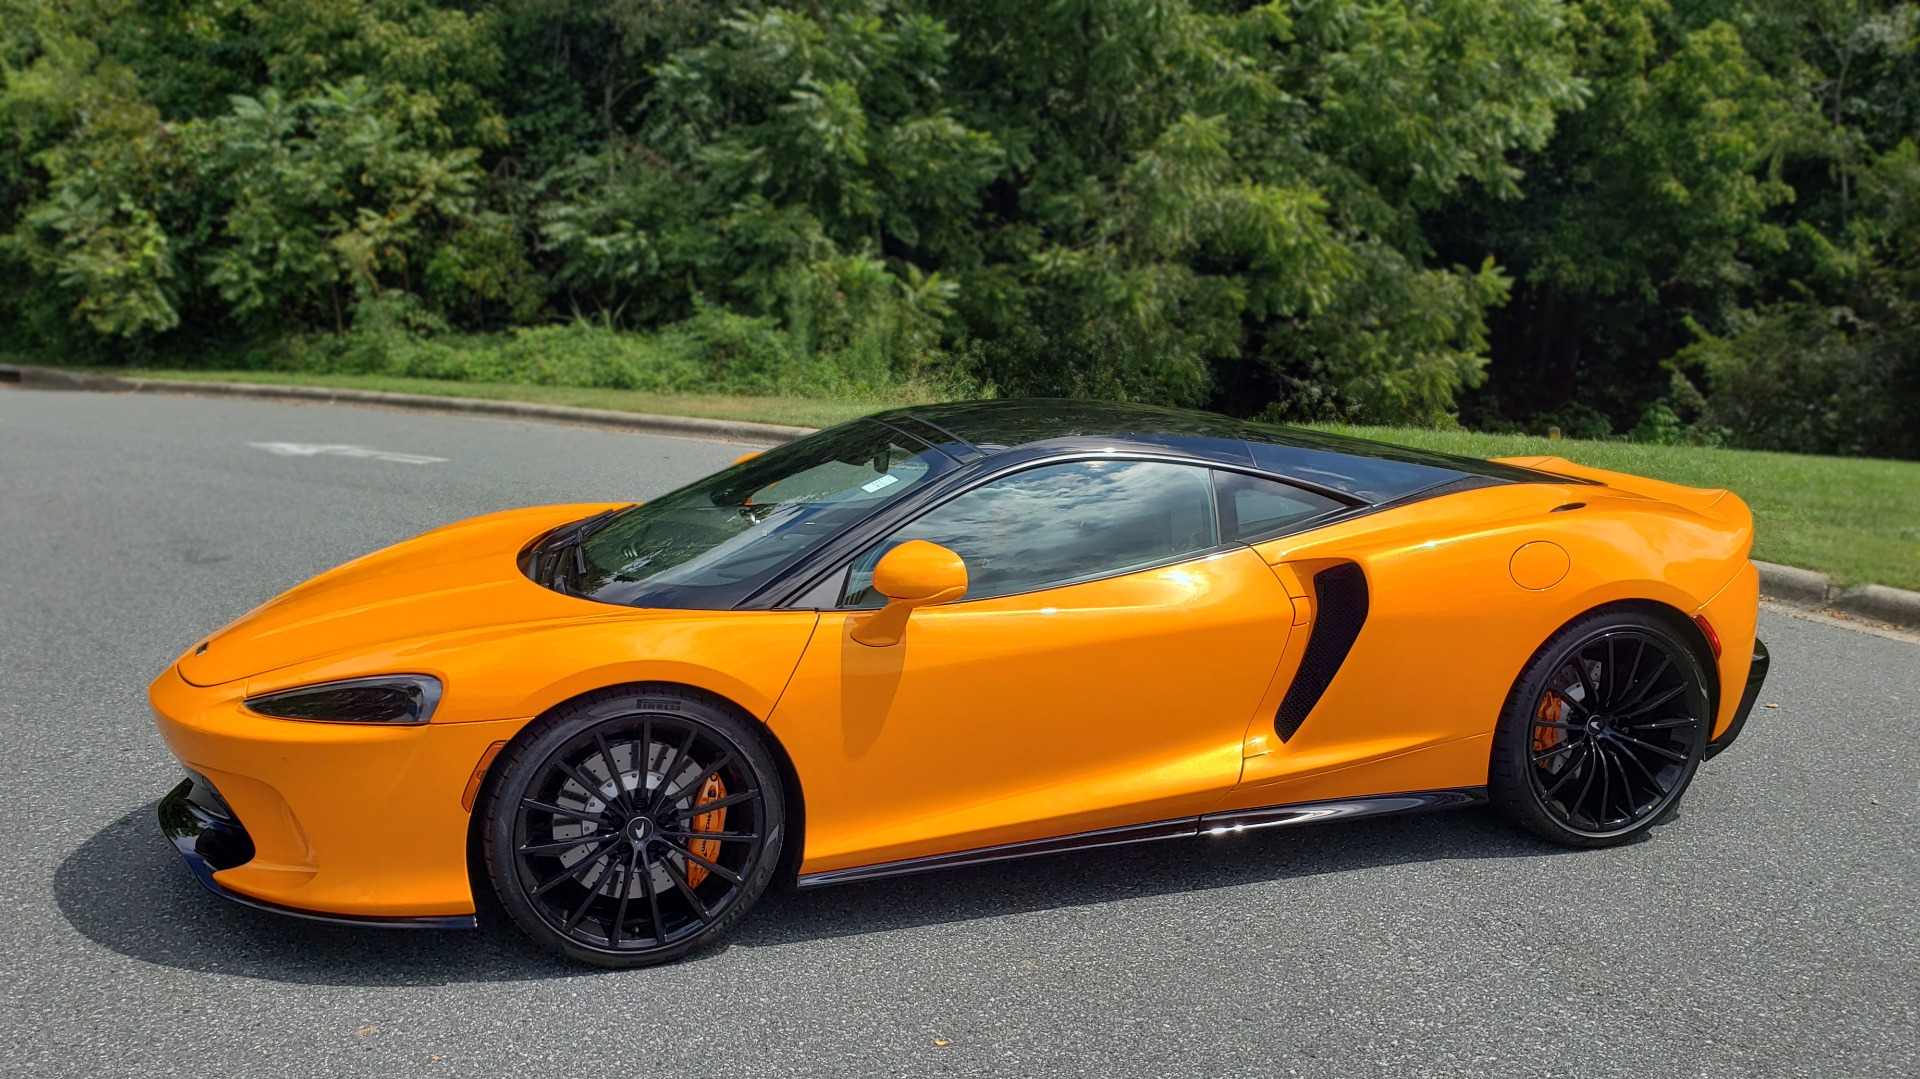 Used 2020 McLaren GT COUPE / 4.0L V8 - 612HP / RWD / NAV / REARVIEW / 20IN BLACK WHEELS for sale $244,000 at Formula Imports in Charlotte NC 28227 8